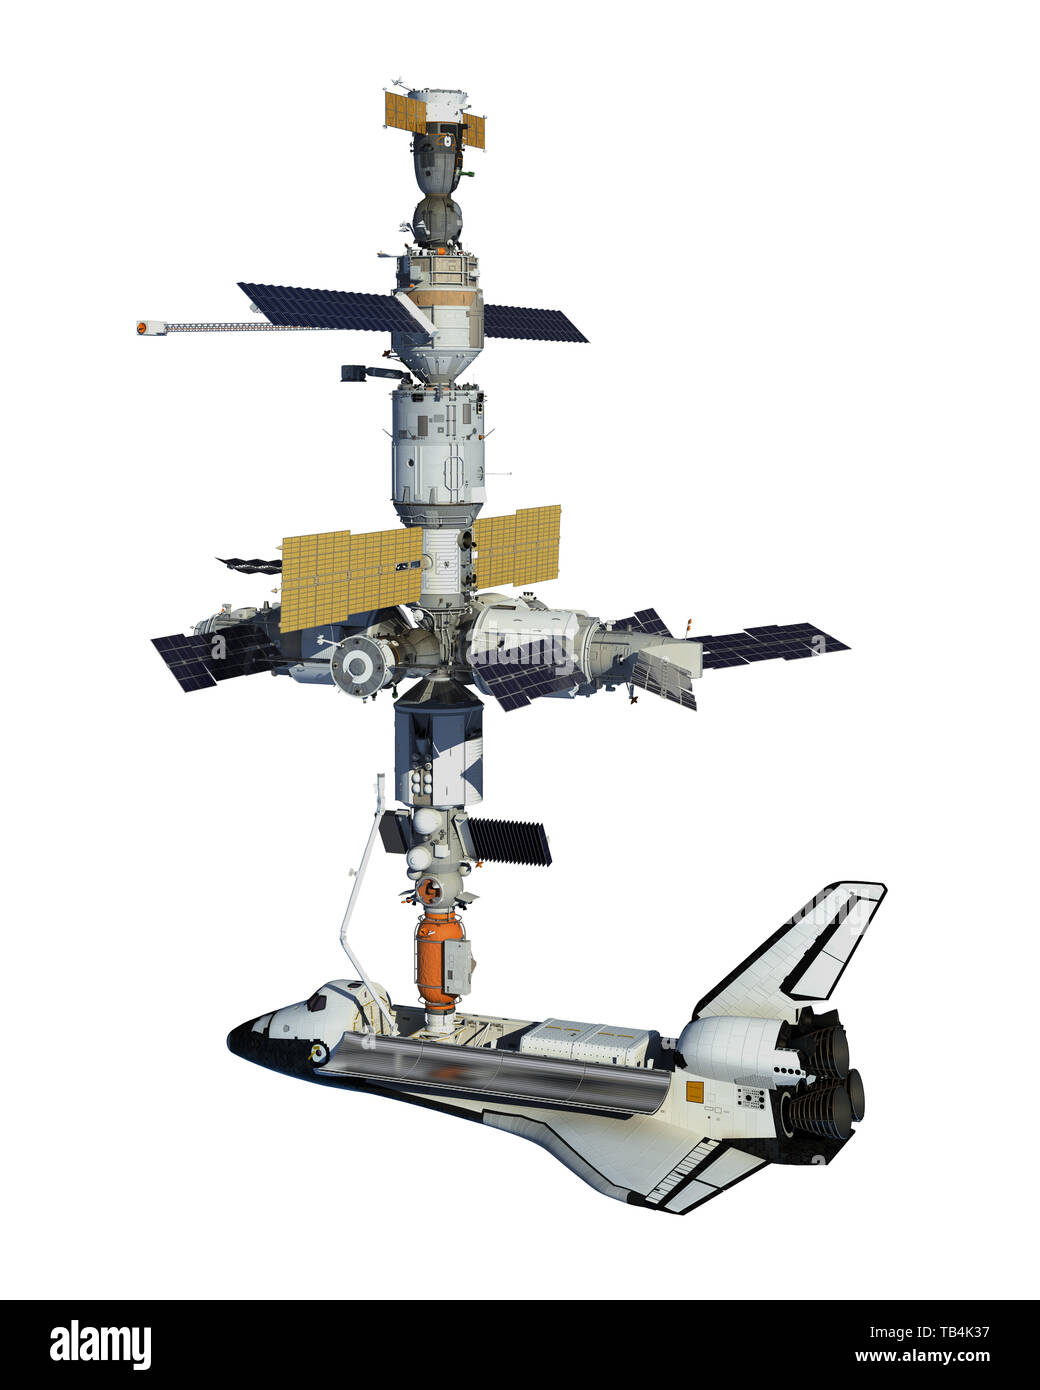 Space Shuttle And Space Station Isolated On White Background. 3D Illustration. - Stock Image